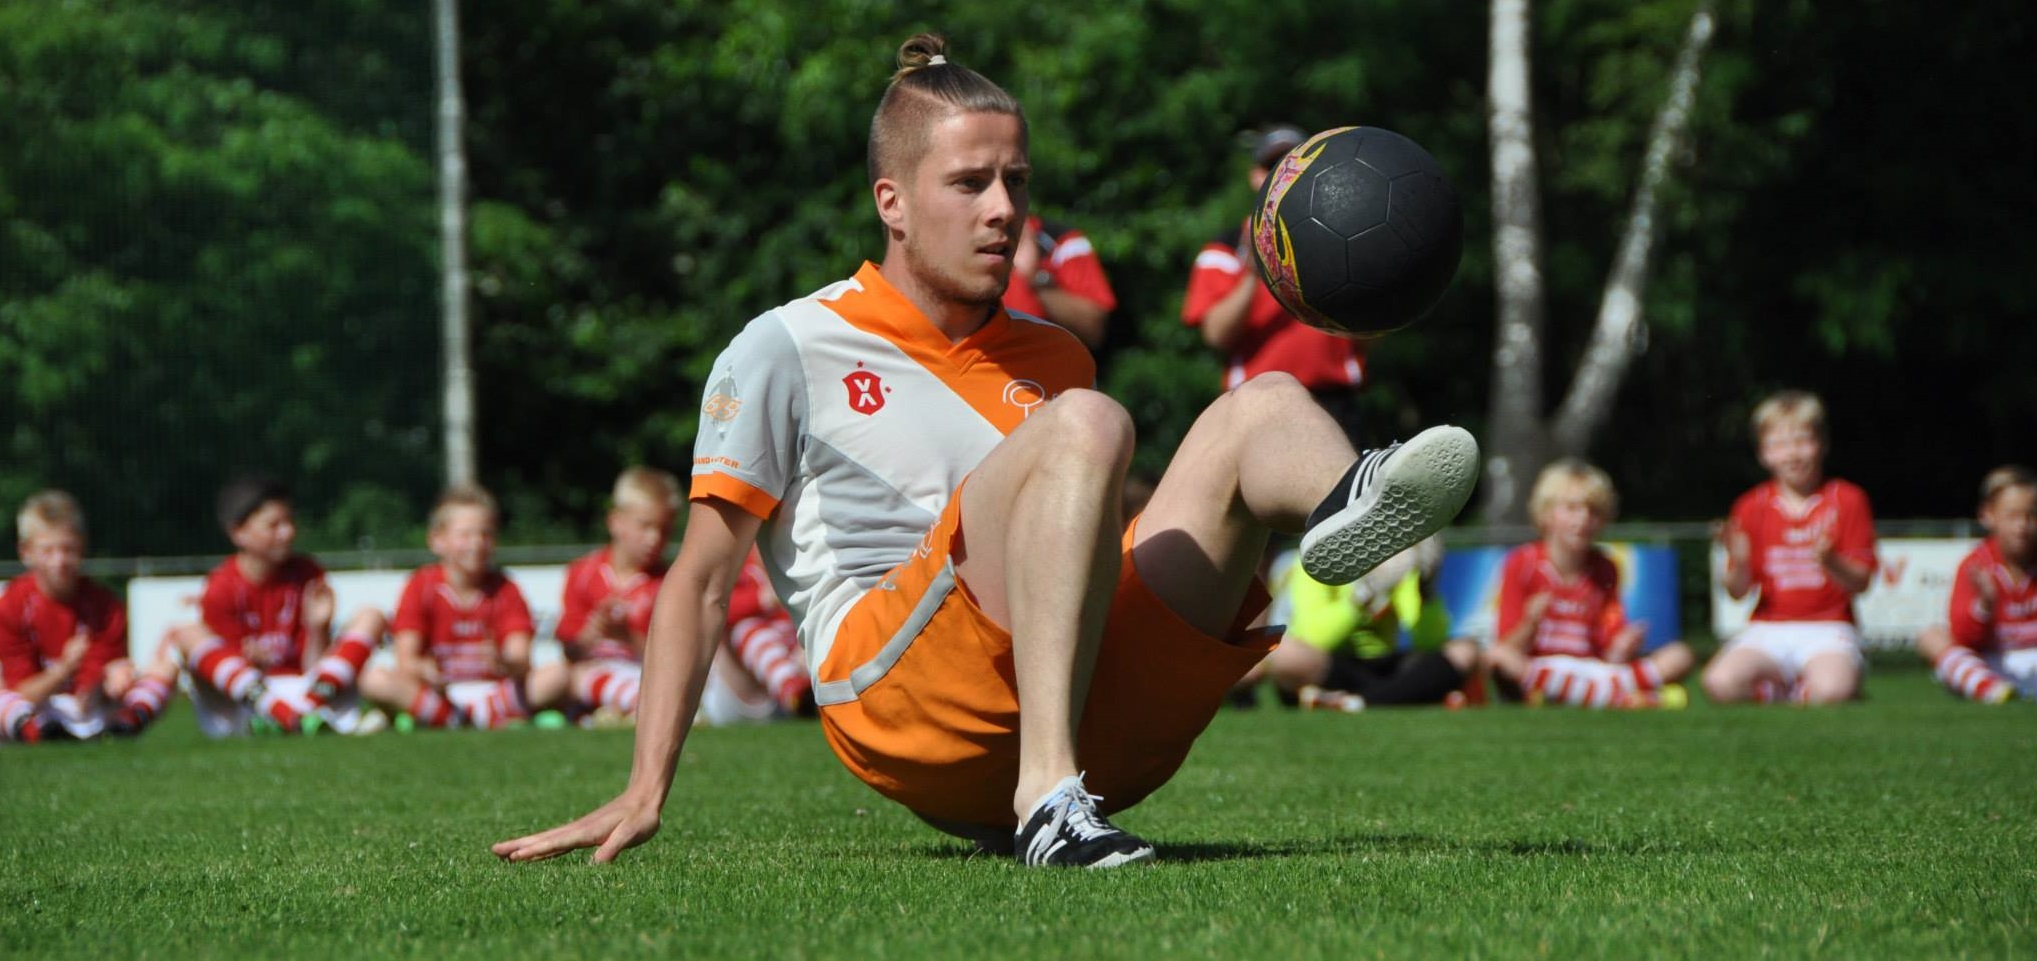 Freestyle voetbalshows